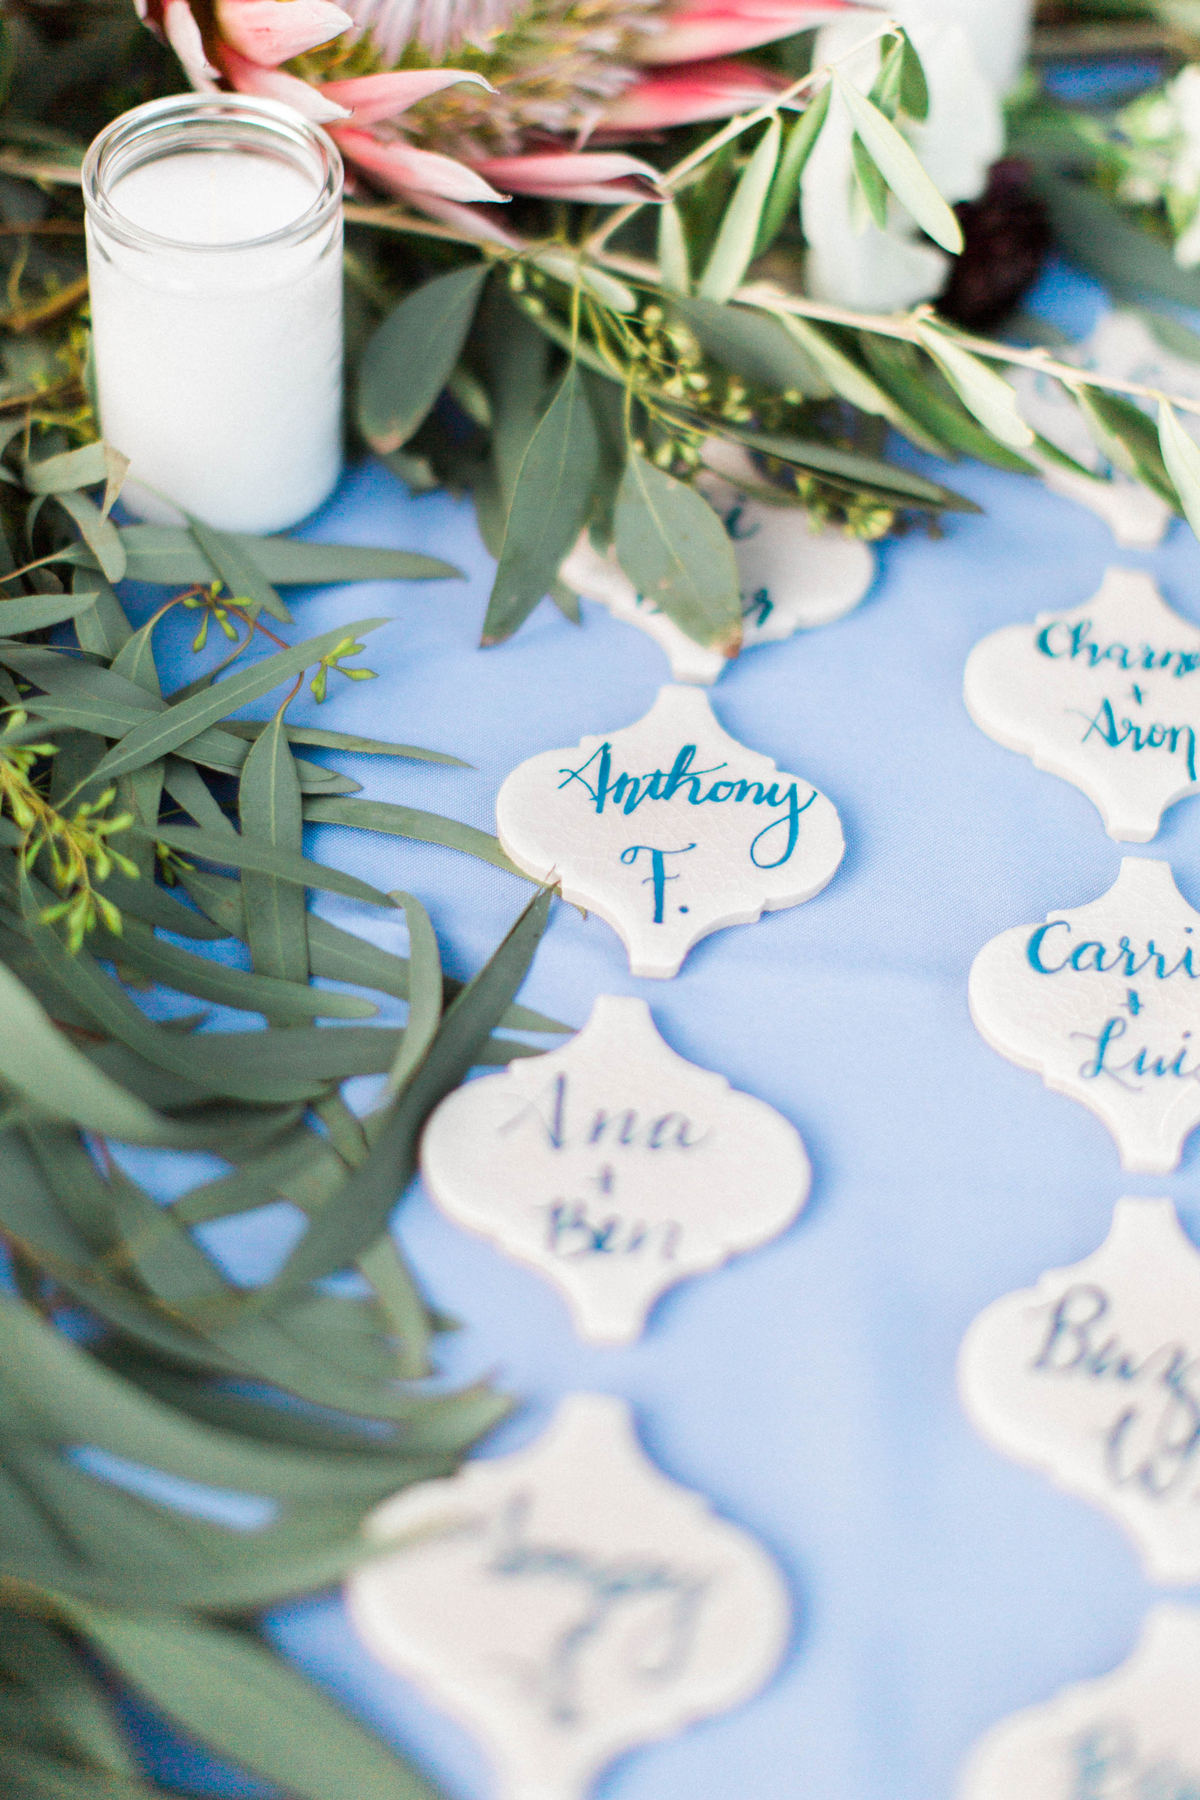 guests names on lantern-shaped escort card tiles